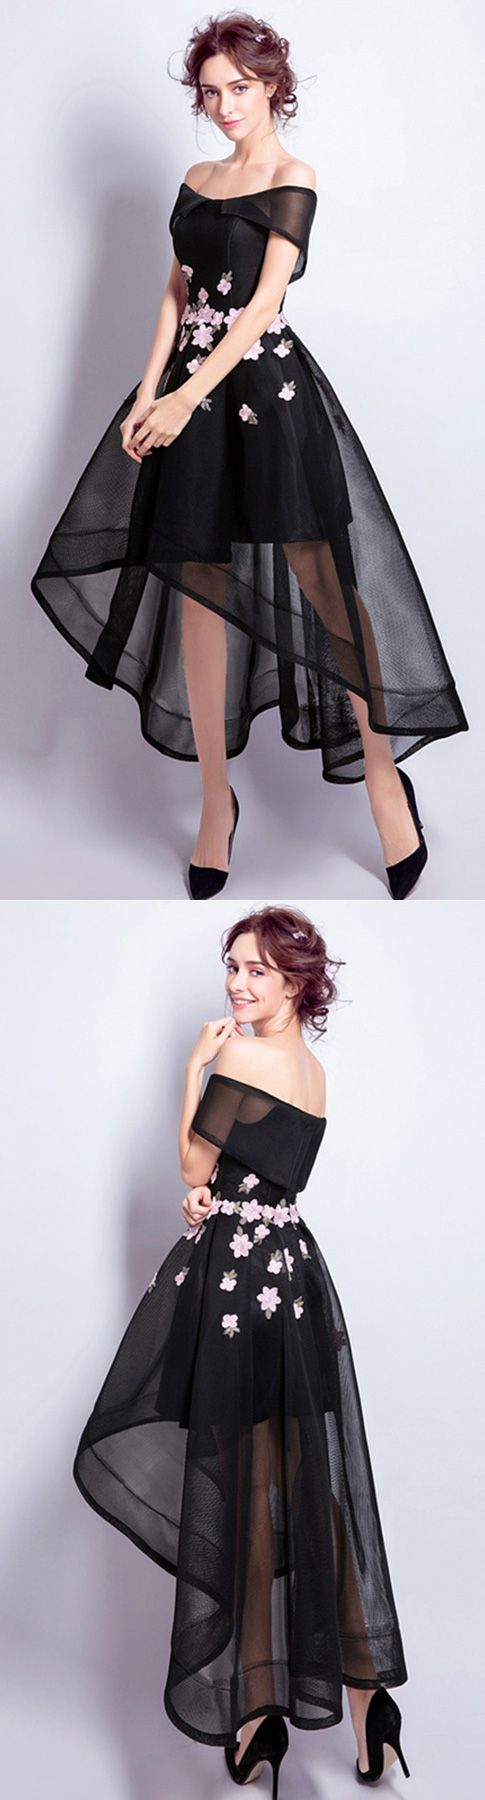 Black aline offtheshoulder high low tulle formal dress with